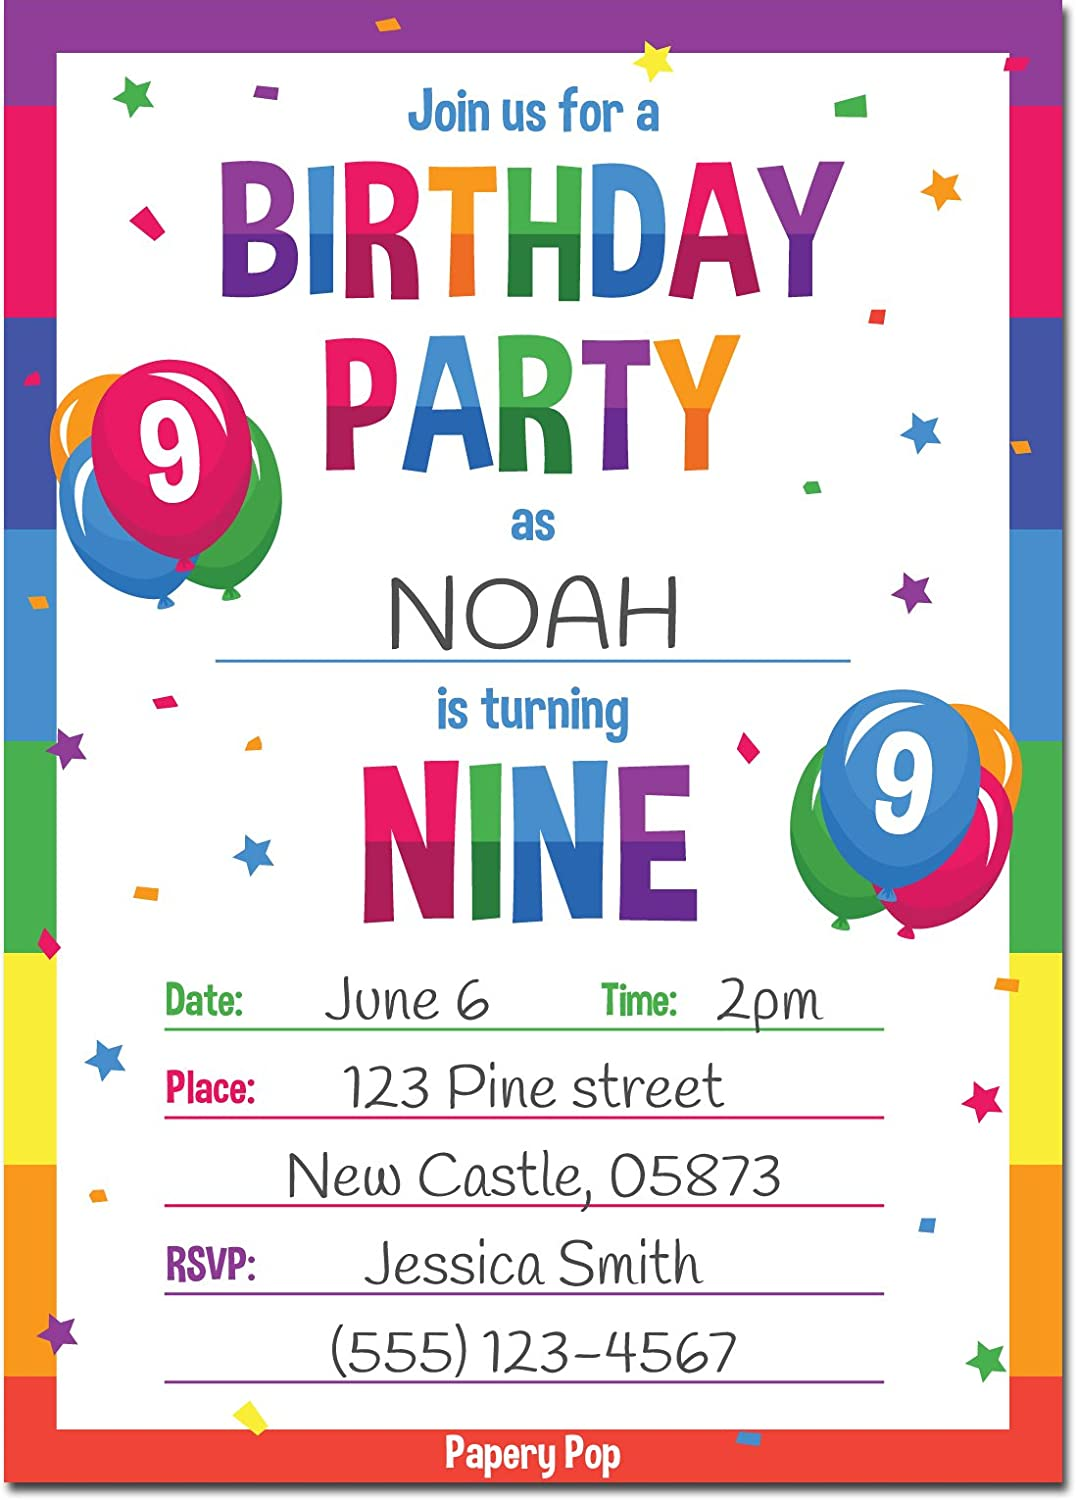 Papery Pop 9th Birthday Party Invitations With Envelopes 15 Count 9 Year Old Kids Birthday Invitations For Boys Or Girls Rainbow